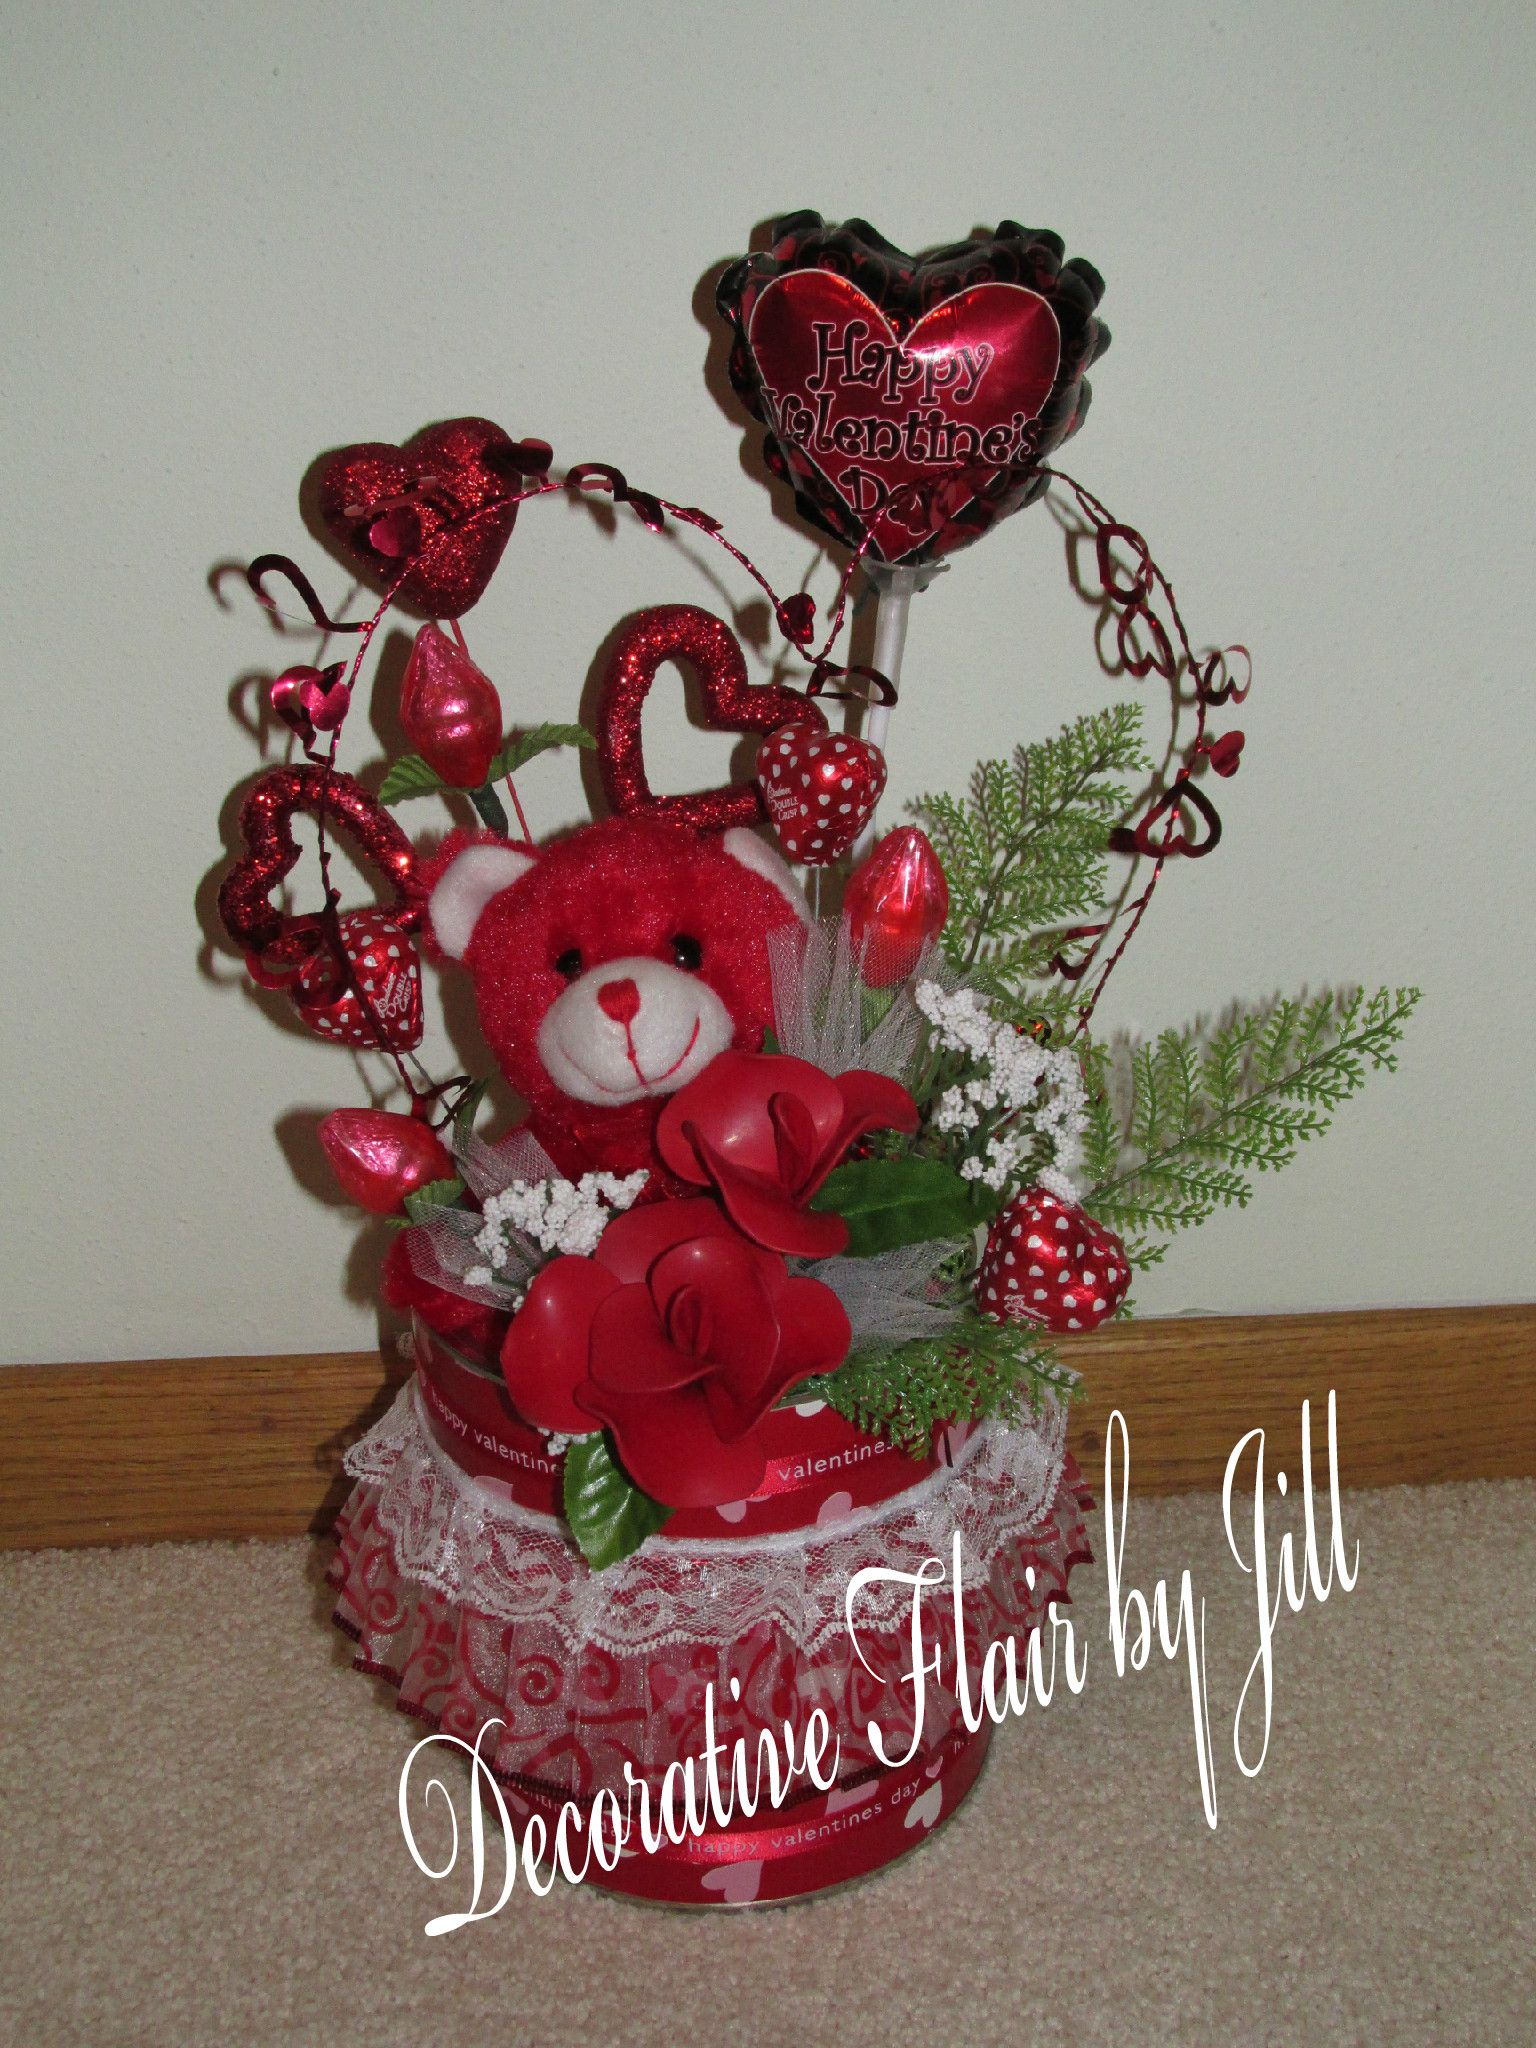 Large Valentine arrangement with edible candy, balloon